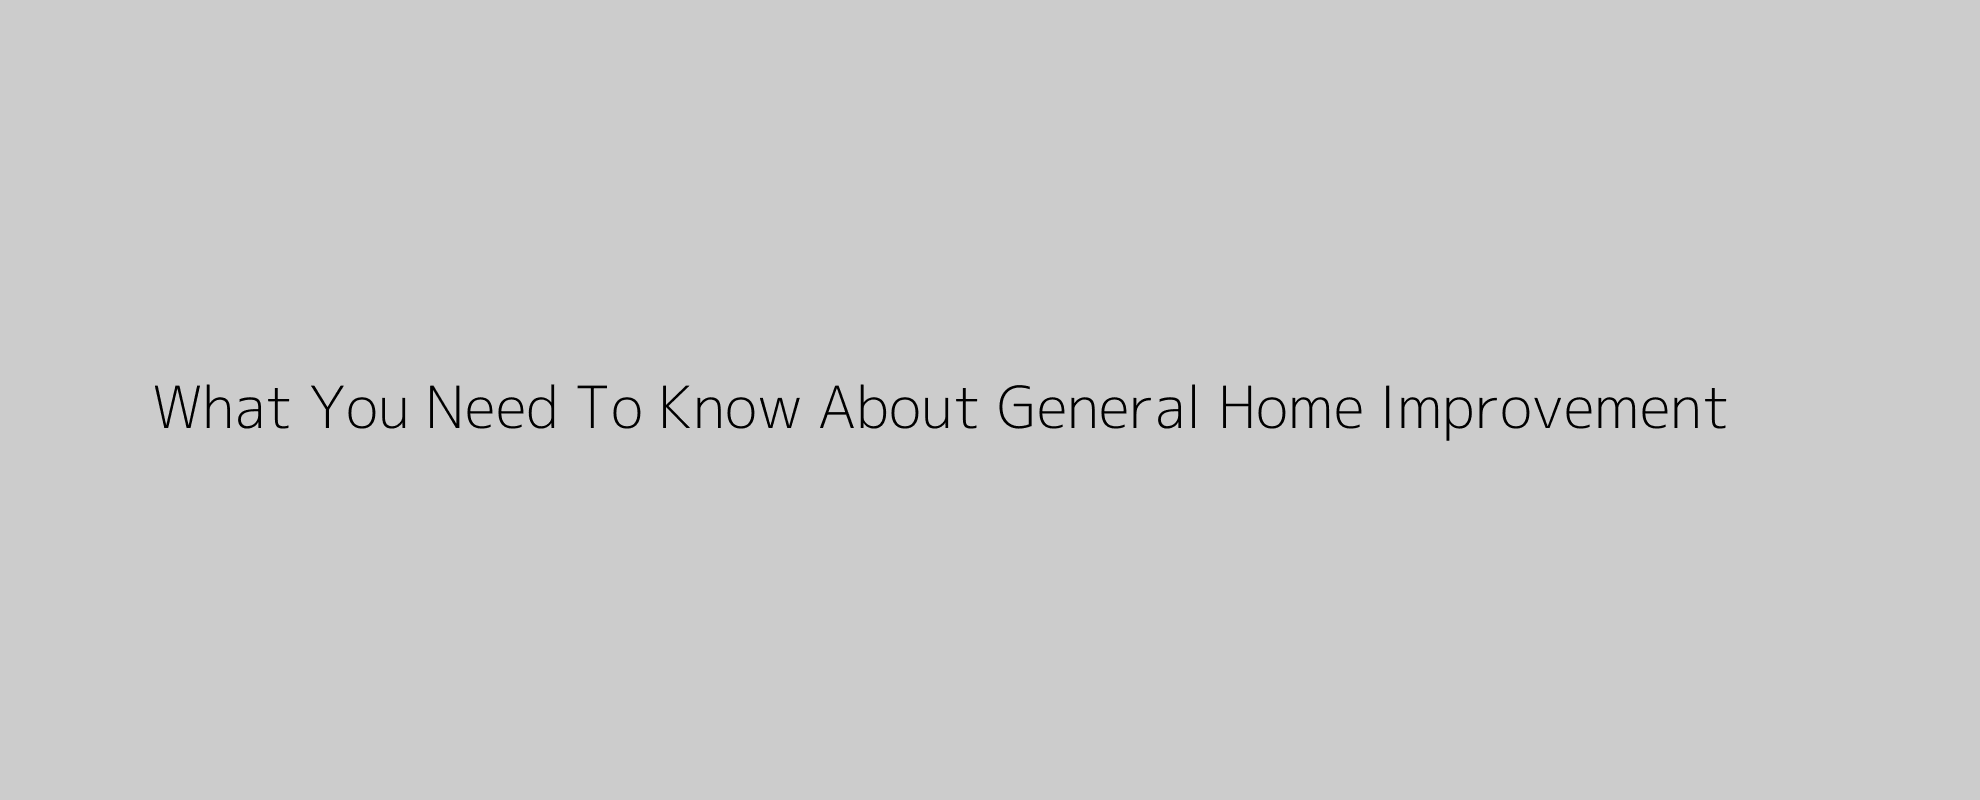 What You Need To Know About General Home Improvement